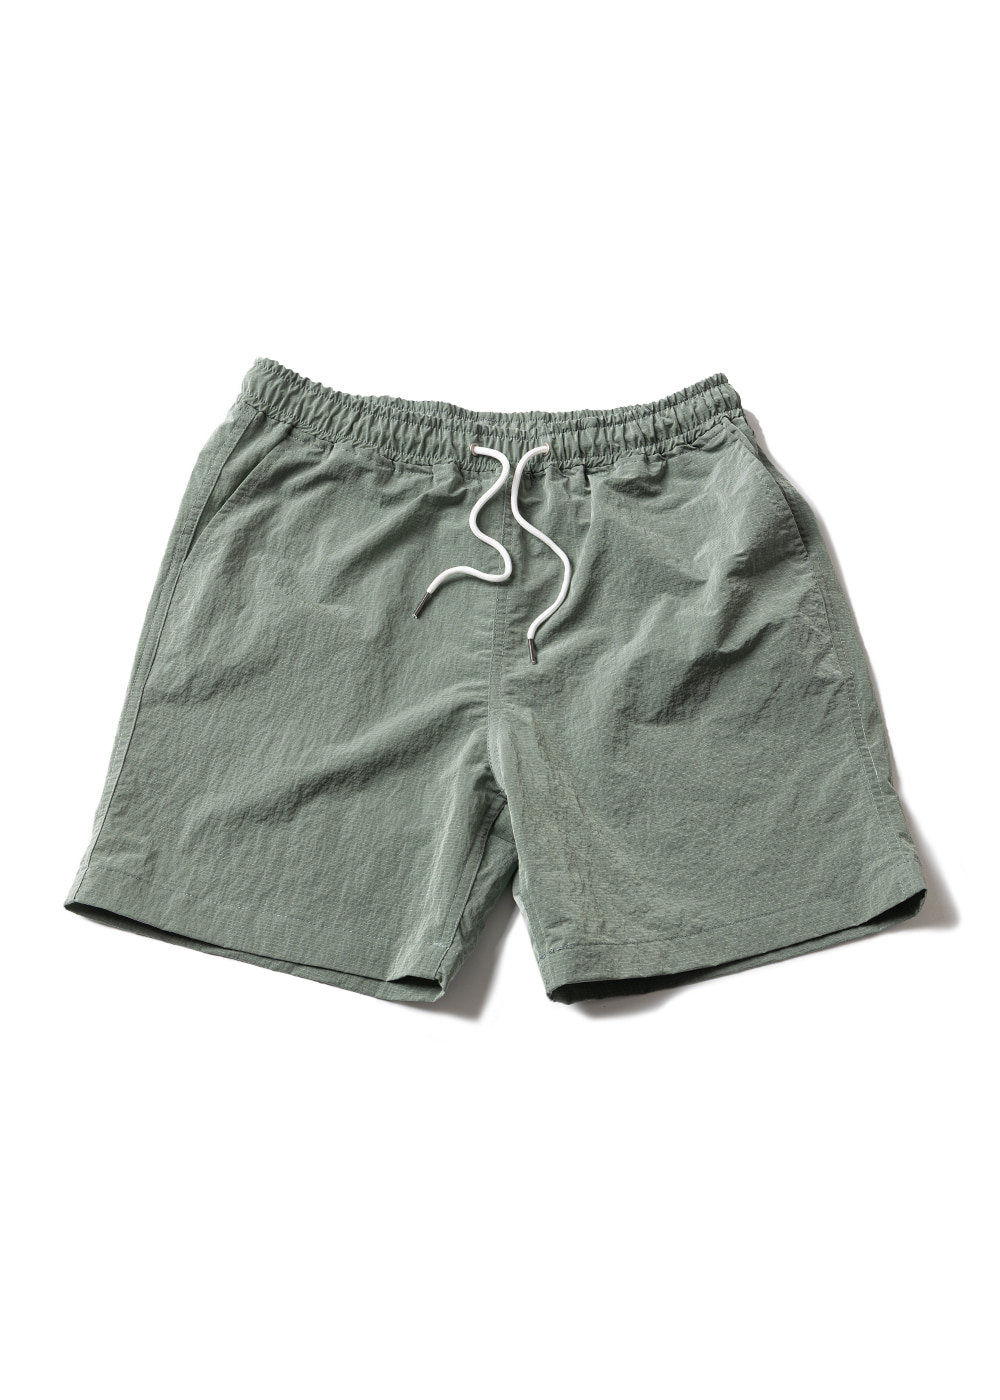 NYLON METAL SHORT PANTS MUZSP004-KK